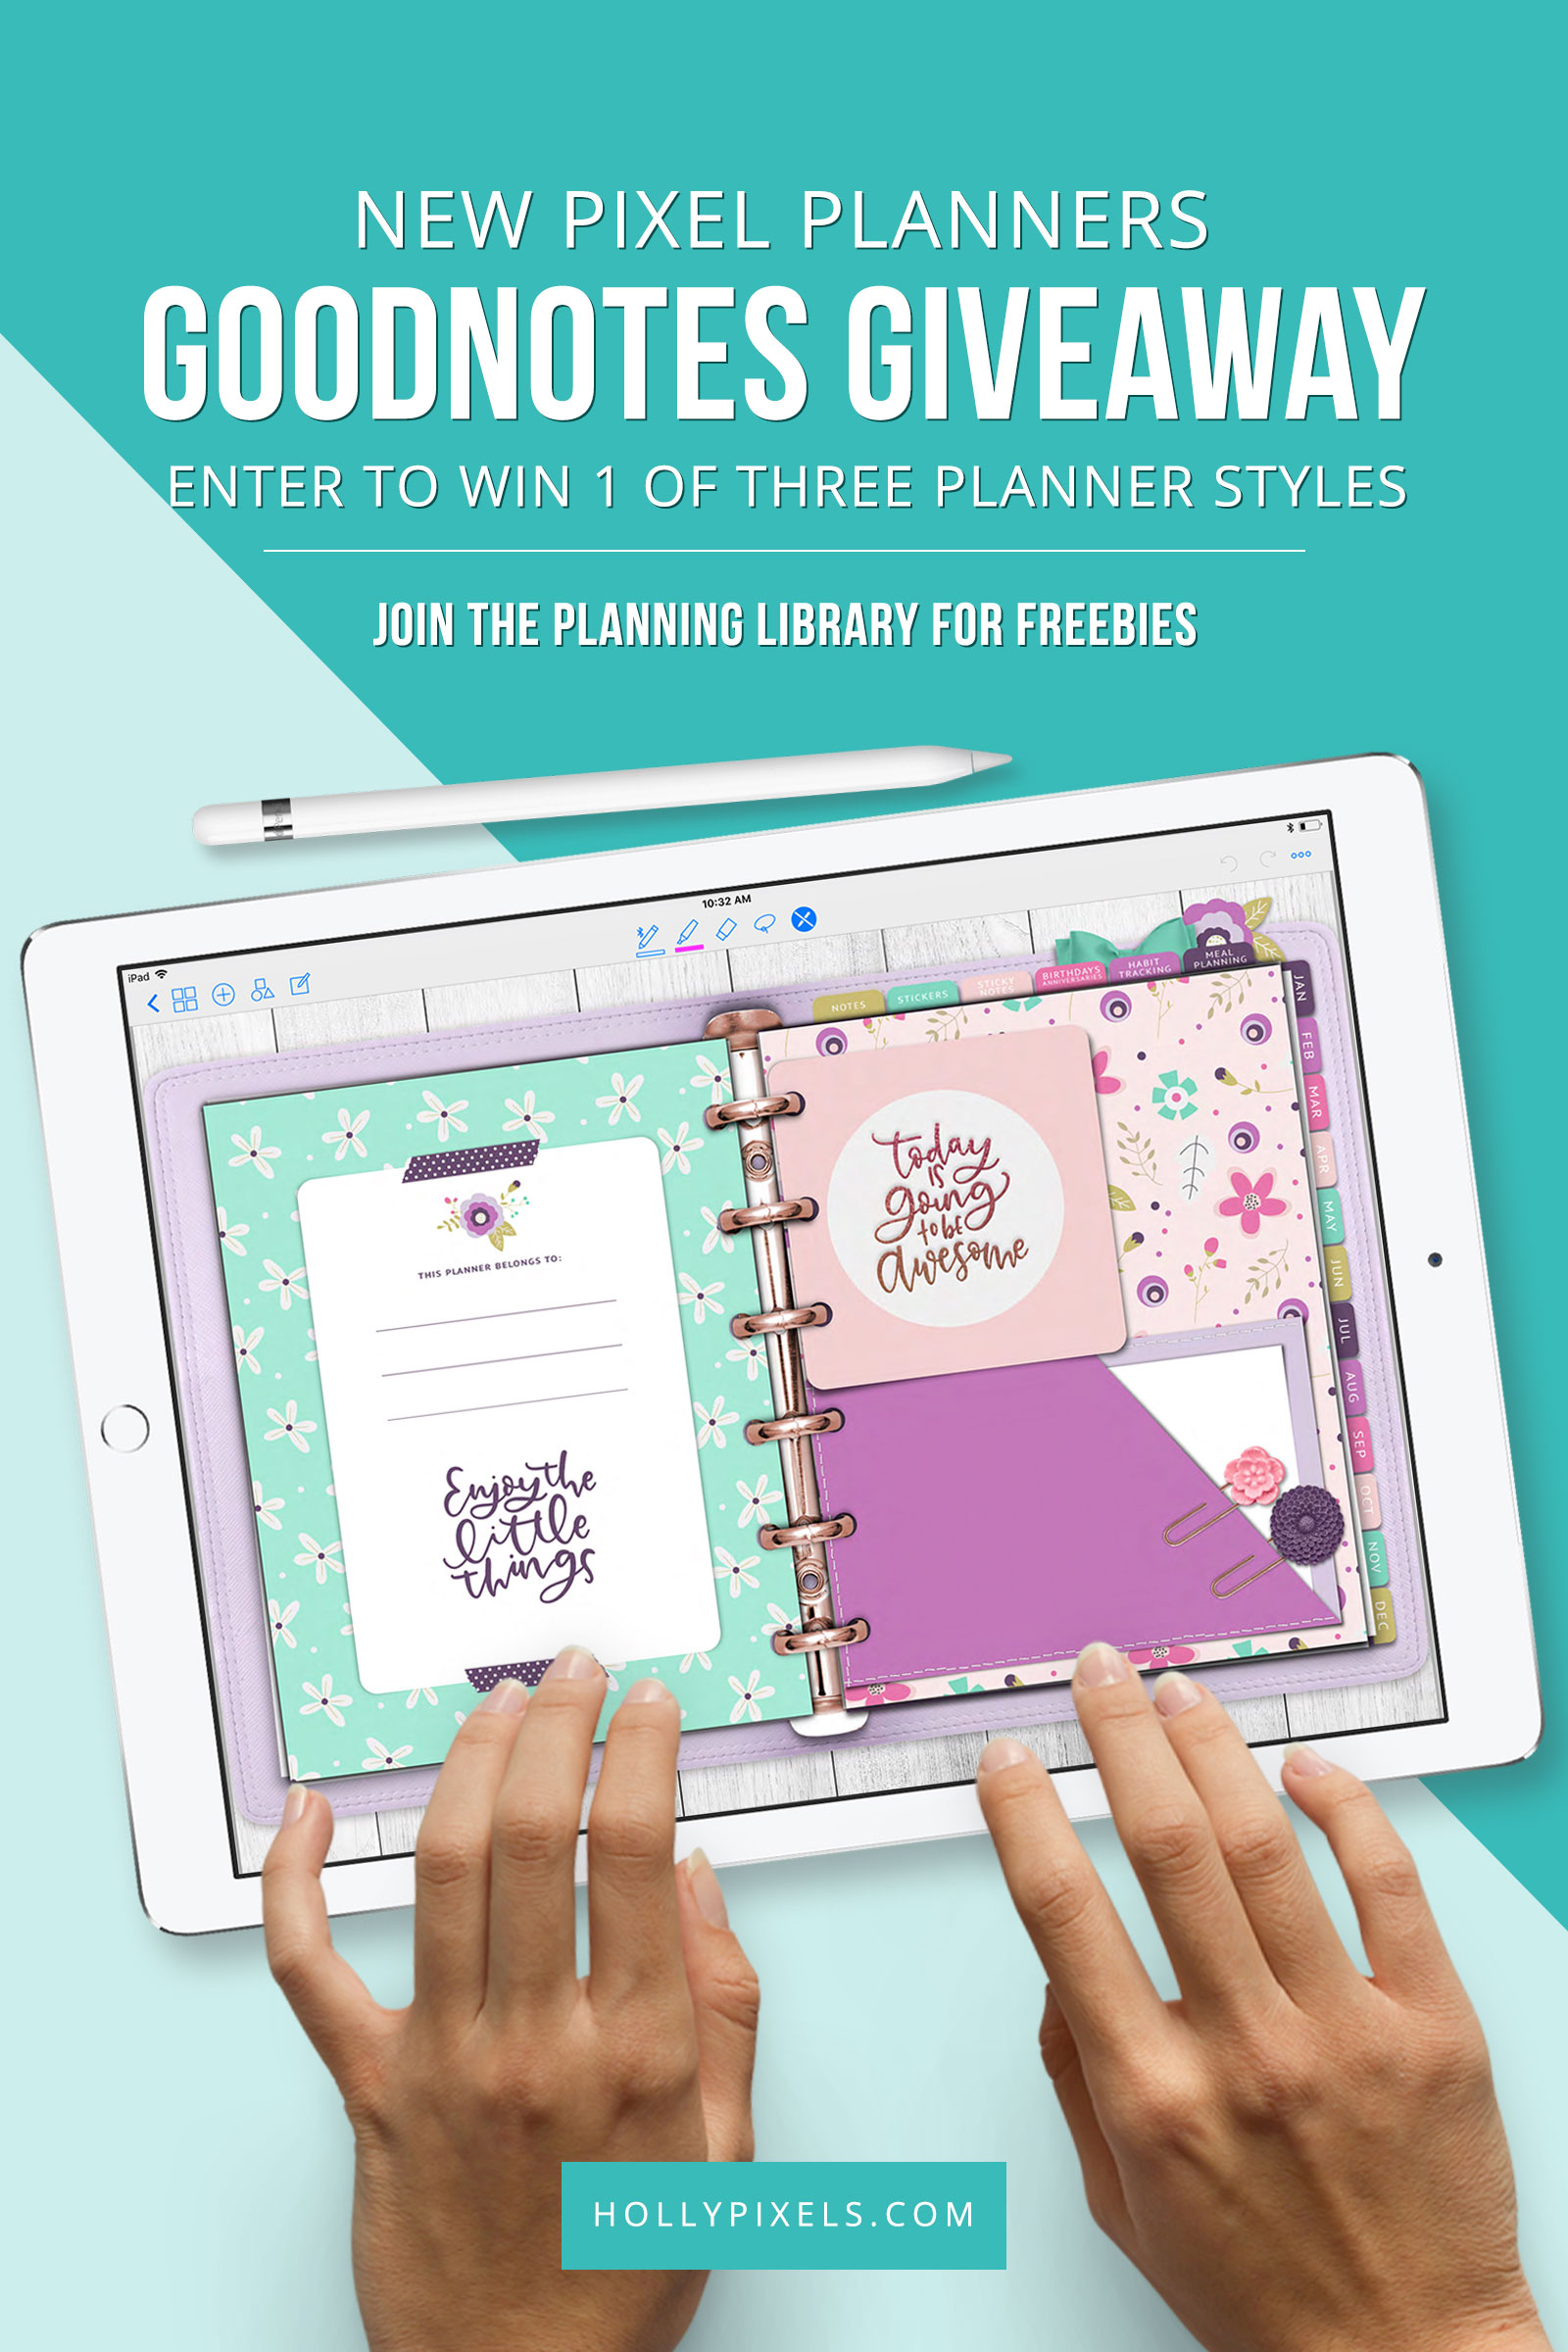 They are here! Our new Pixel Planner styles are in the shoppe and ready to purchase for your digital planning with GoodNotes. We are super excited to be bringing you our labor of love in three styles.